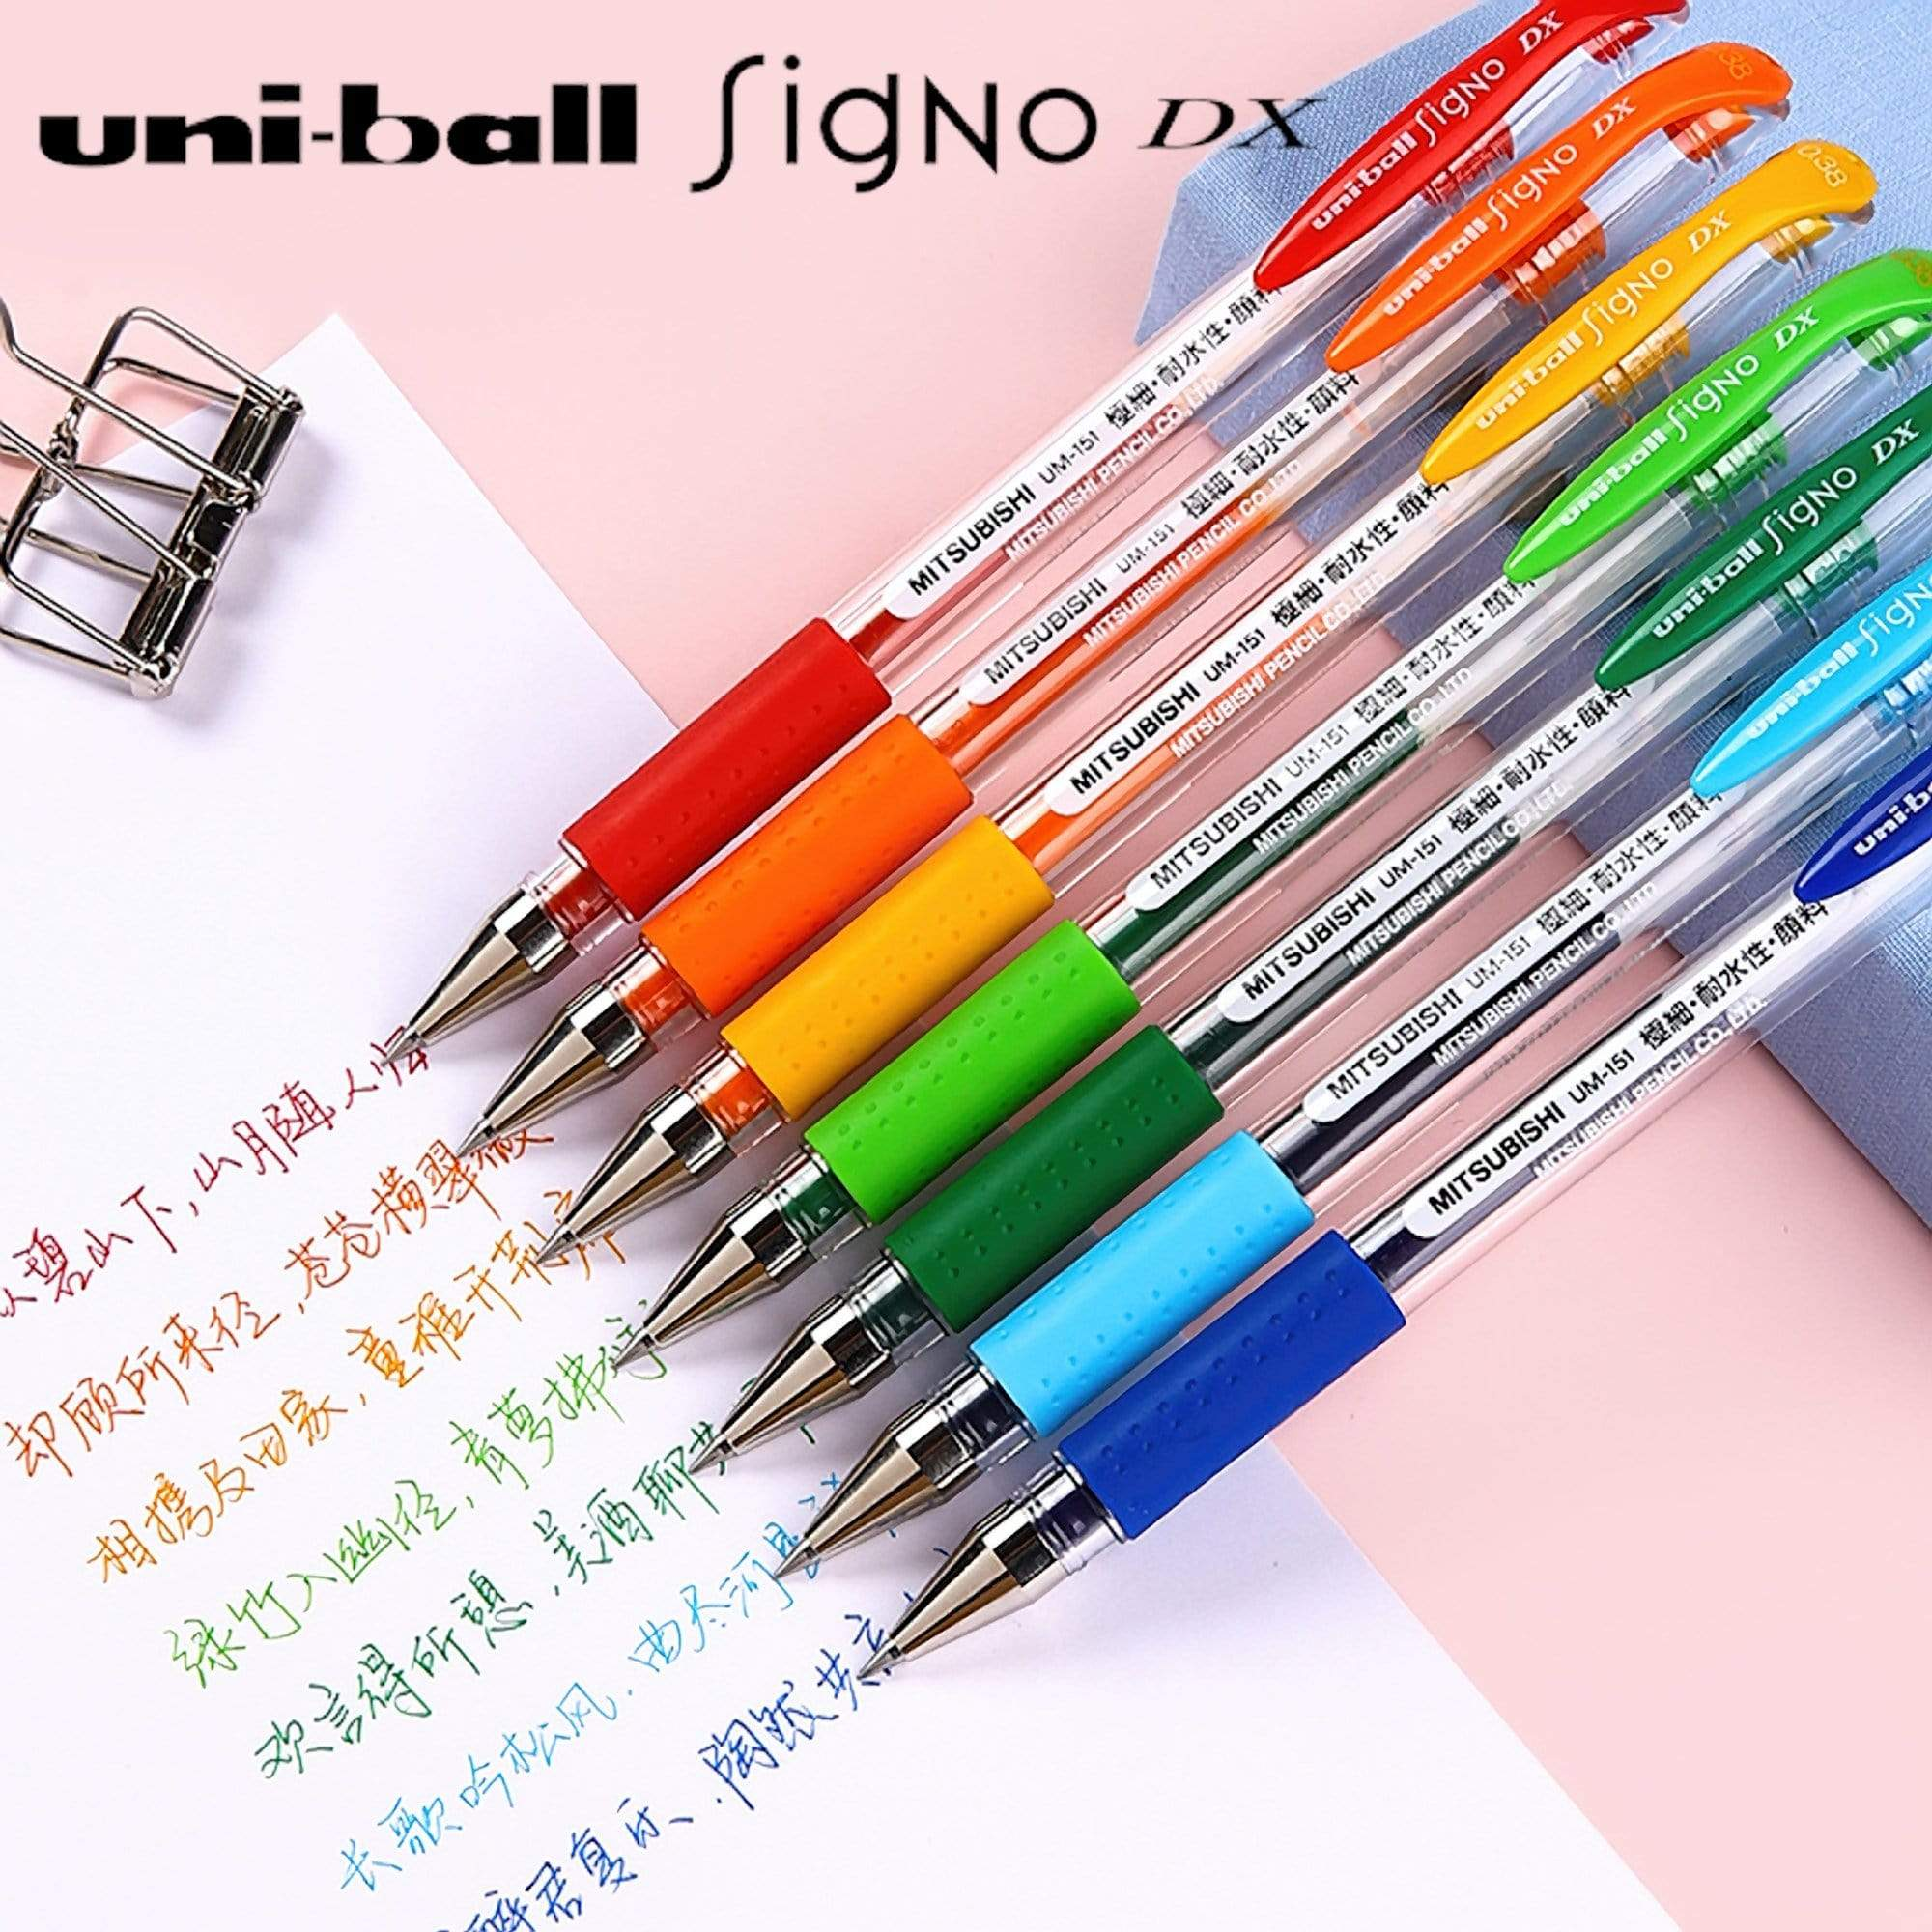 Uni-ball Signo UM-151 Gel Pen RED | 0.28 mm - The Stationery Life!